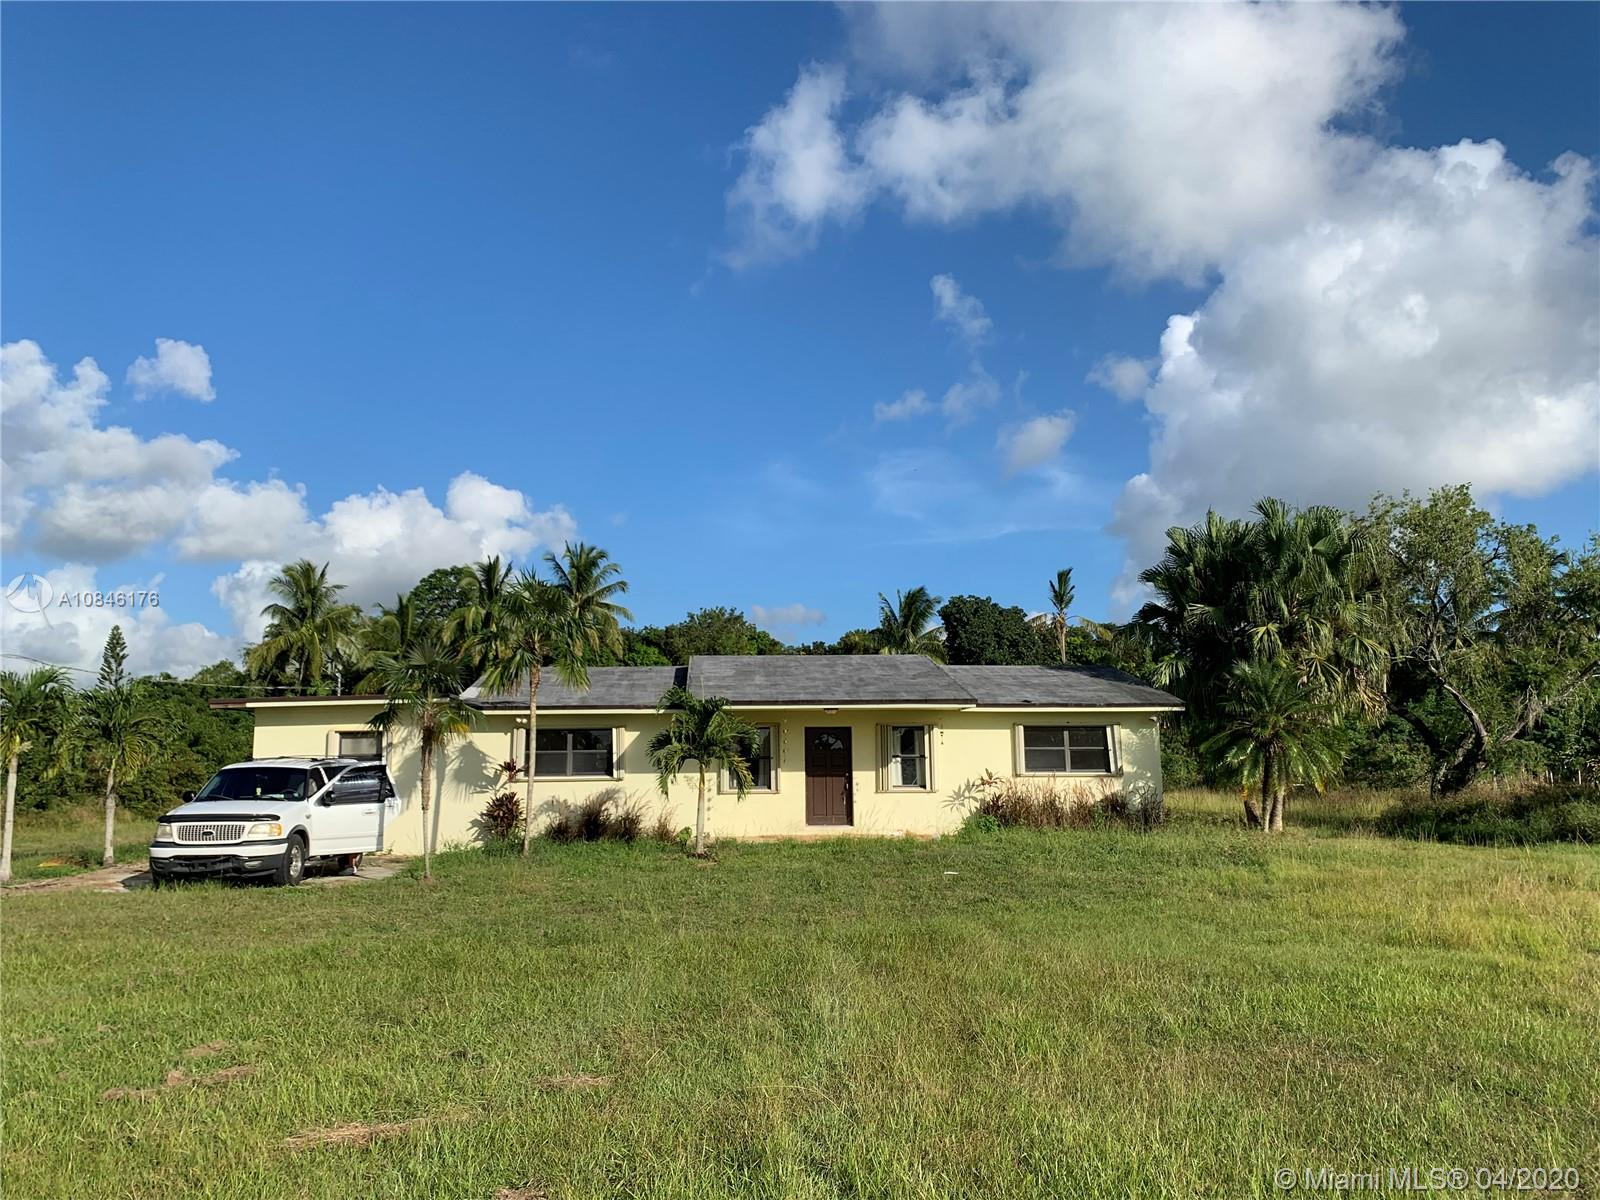 25055 SW 209th Ave, Homestead, FL 33031 - Homestead, FL real estate listing